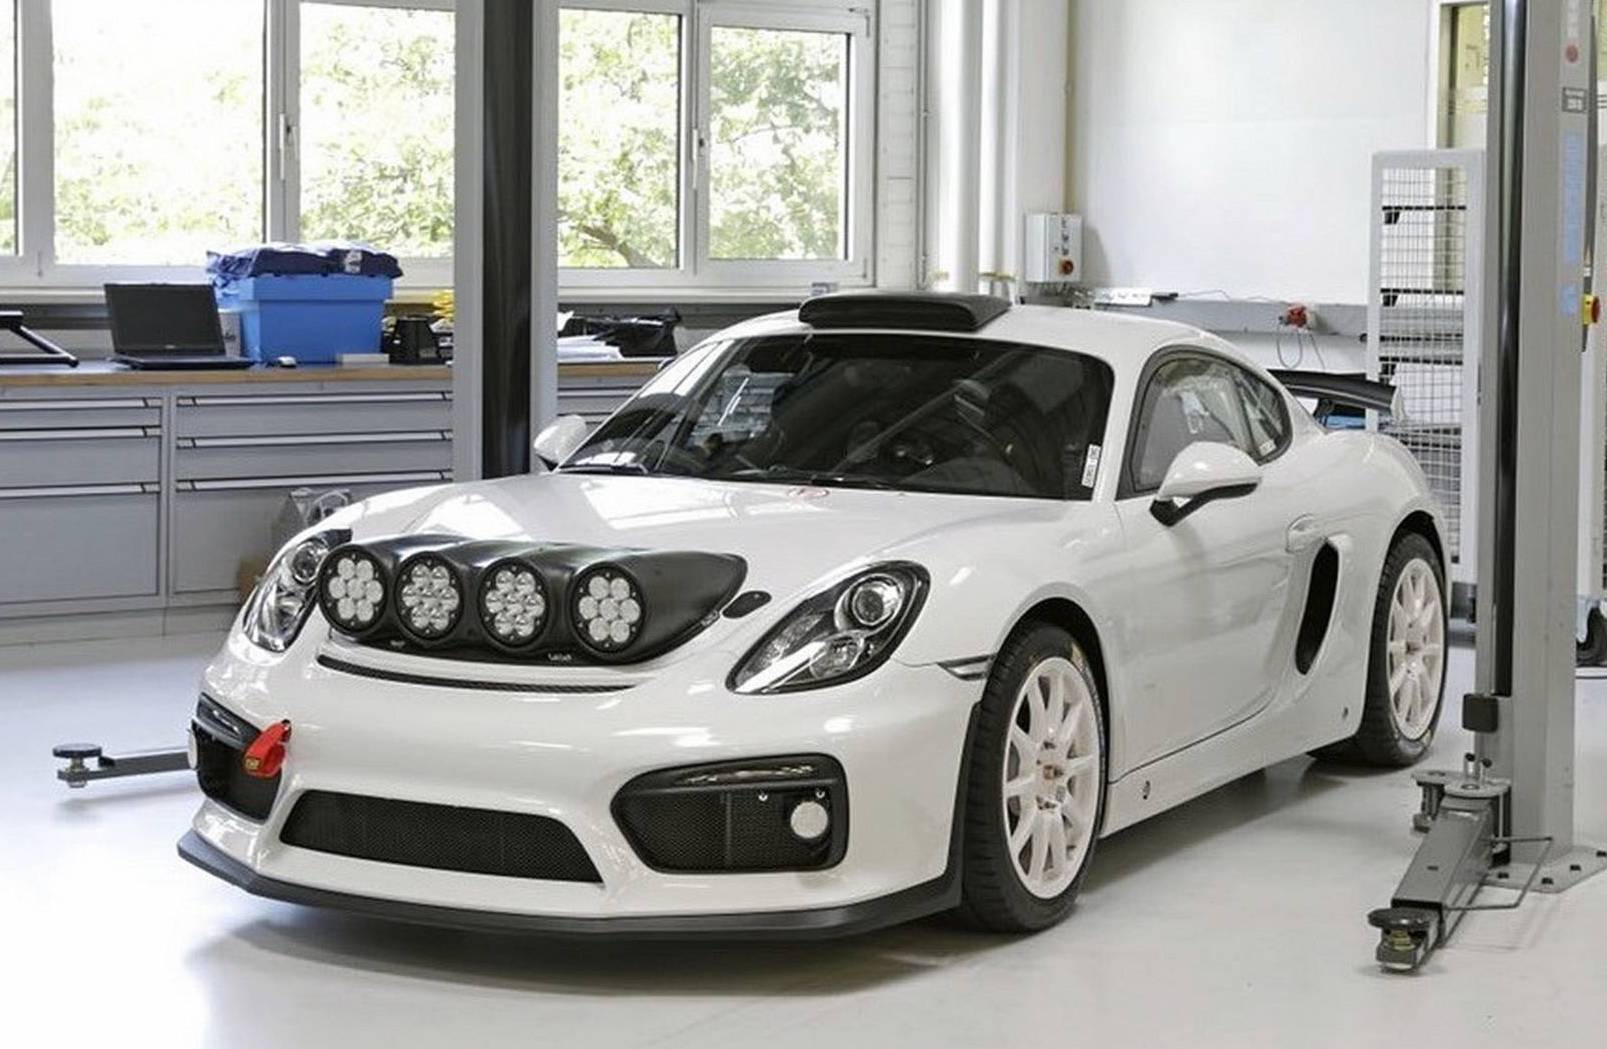 porsche cayman gt4 clubsport rally concept yes please performancedrive. Black Bedroom Furniture Sets. Home Design Ideas